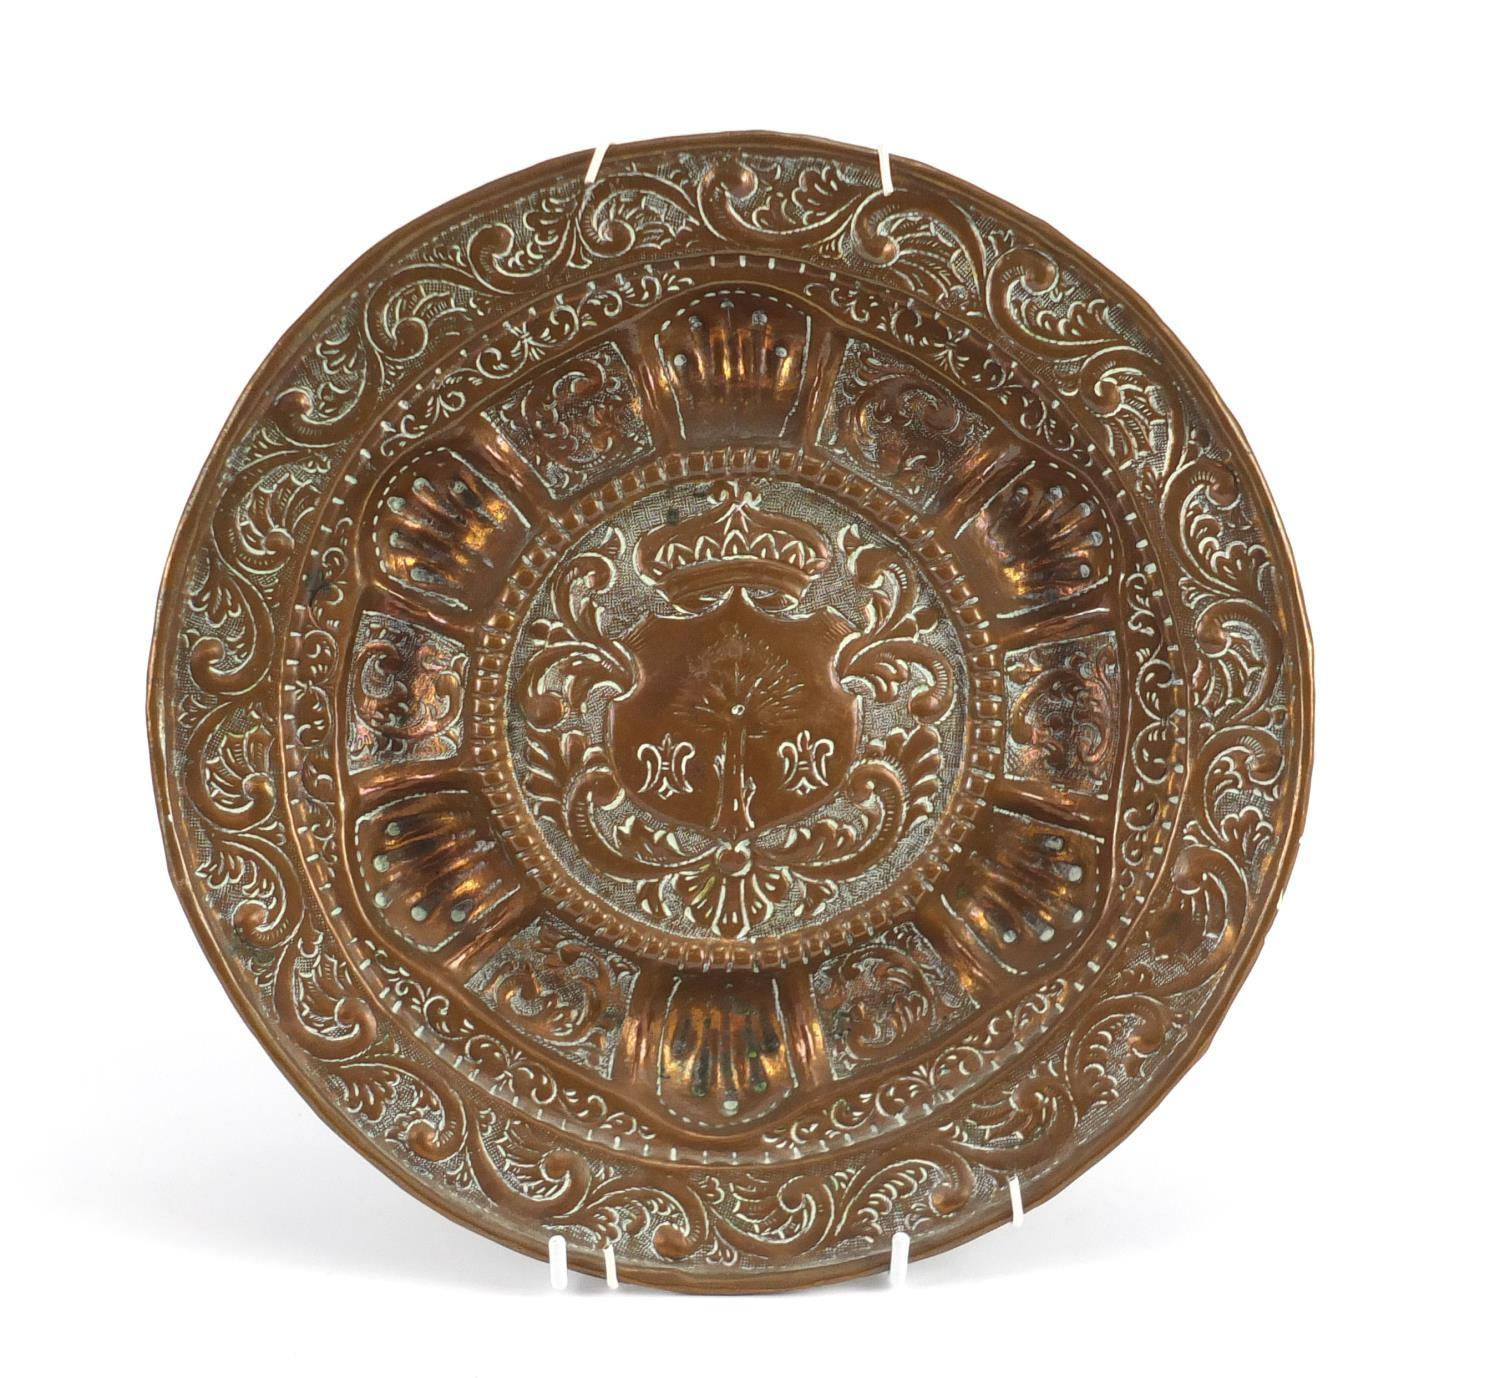 Lot 22 - Antique copper plate embossed with a heraldic crest, 27.5cm in diameter :For Further Condition